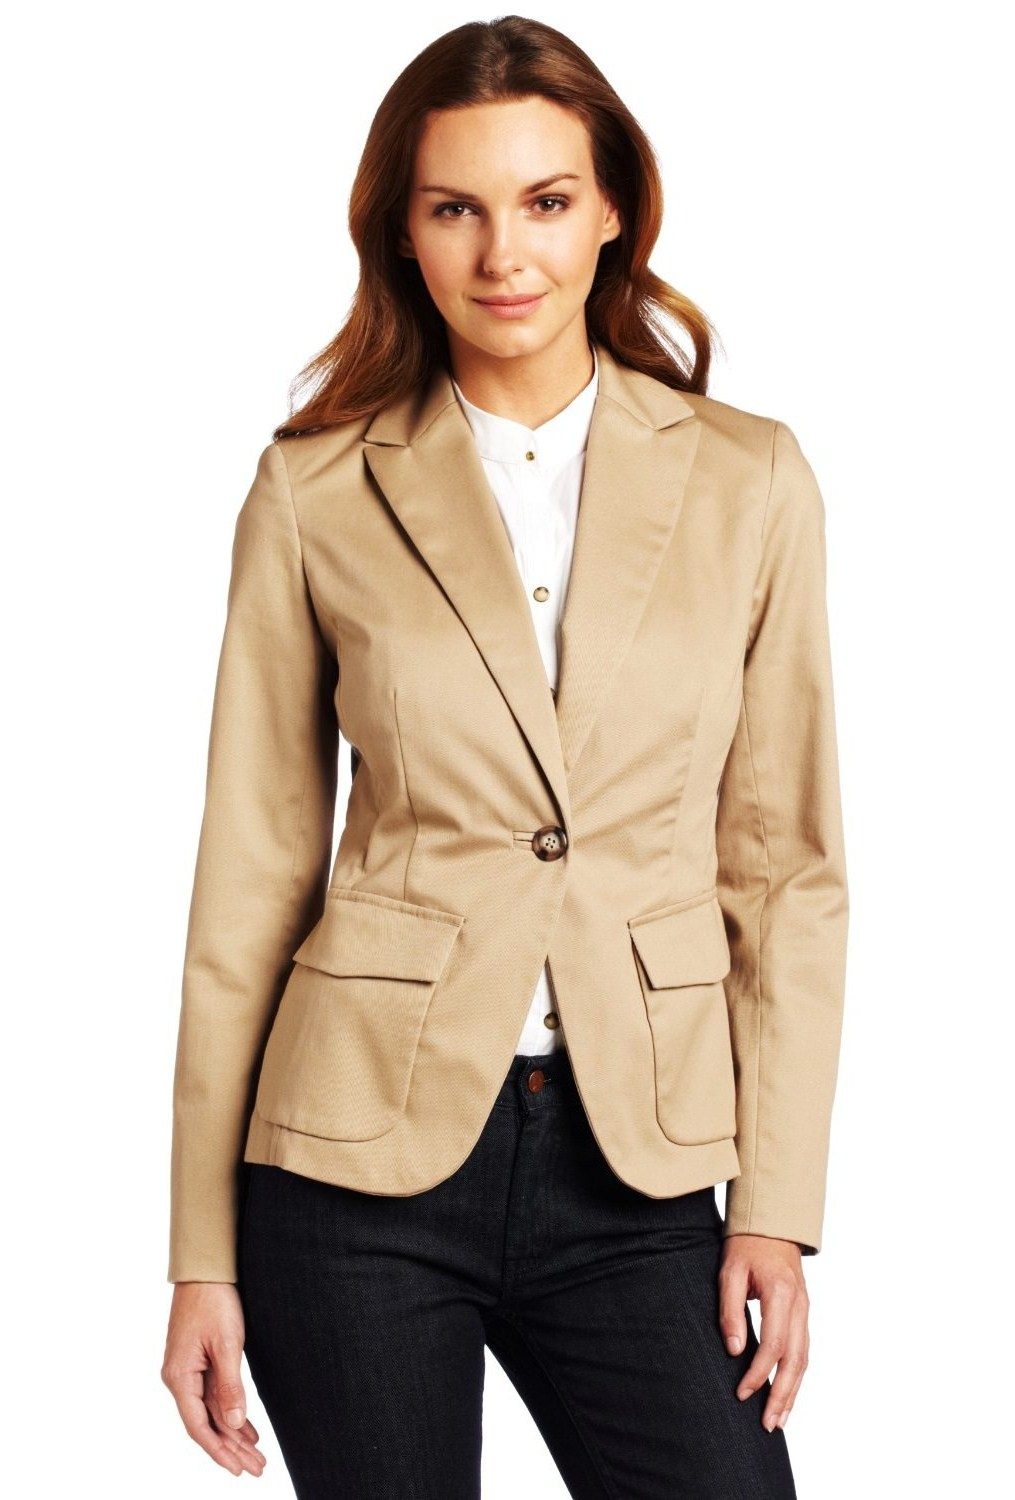 Shop a great selection of Coats & Jackets for Women at Nordstrom Rack. Find designer Coats & Jackets for Women up to 70% off and get free shipping on orders over $